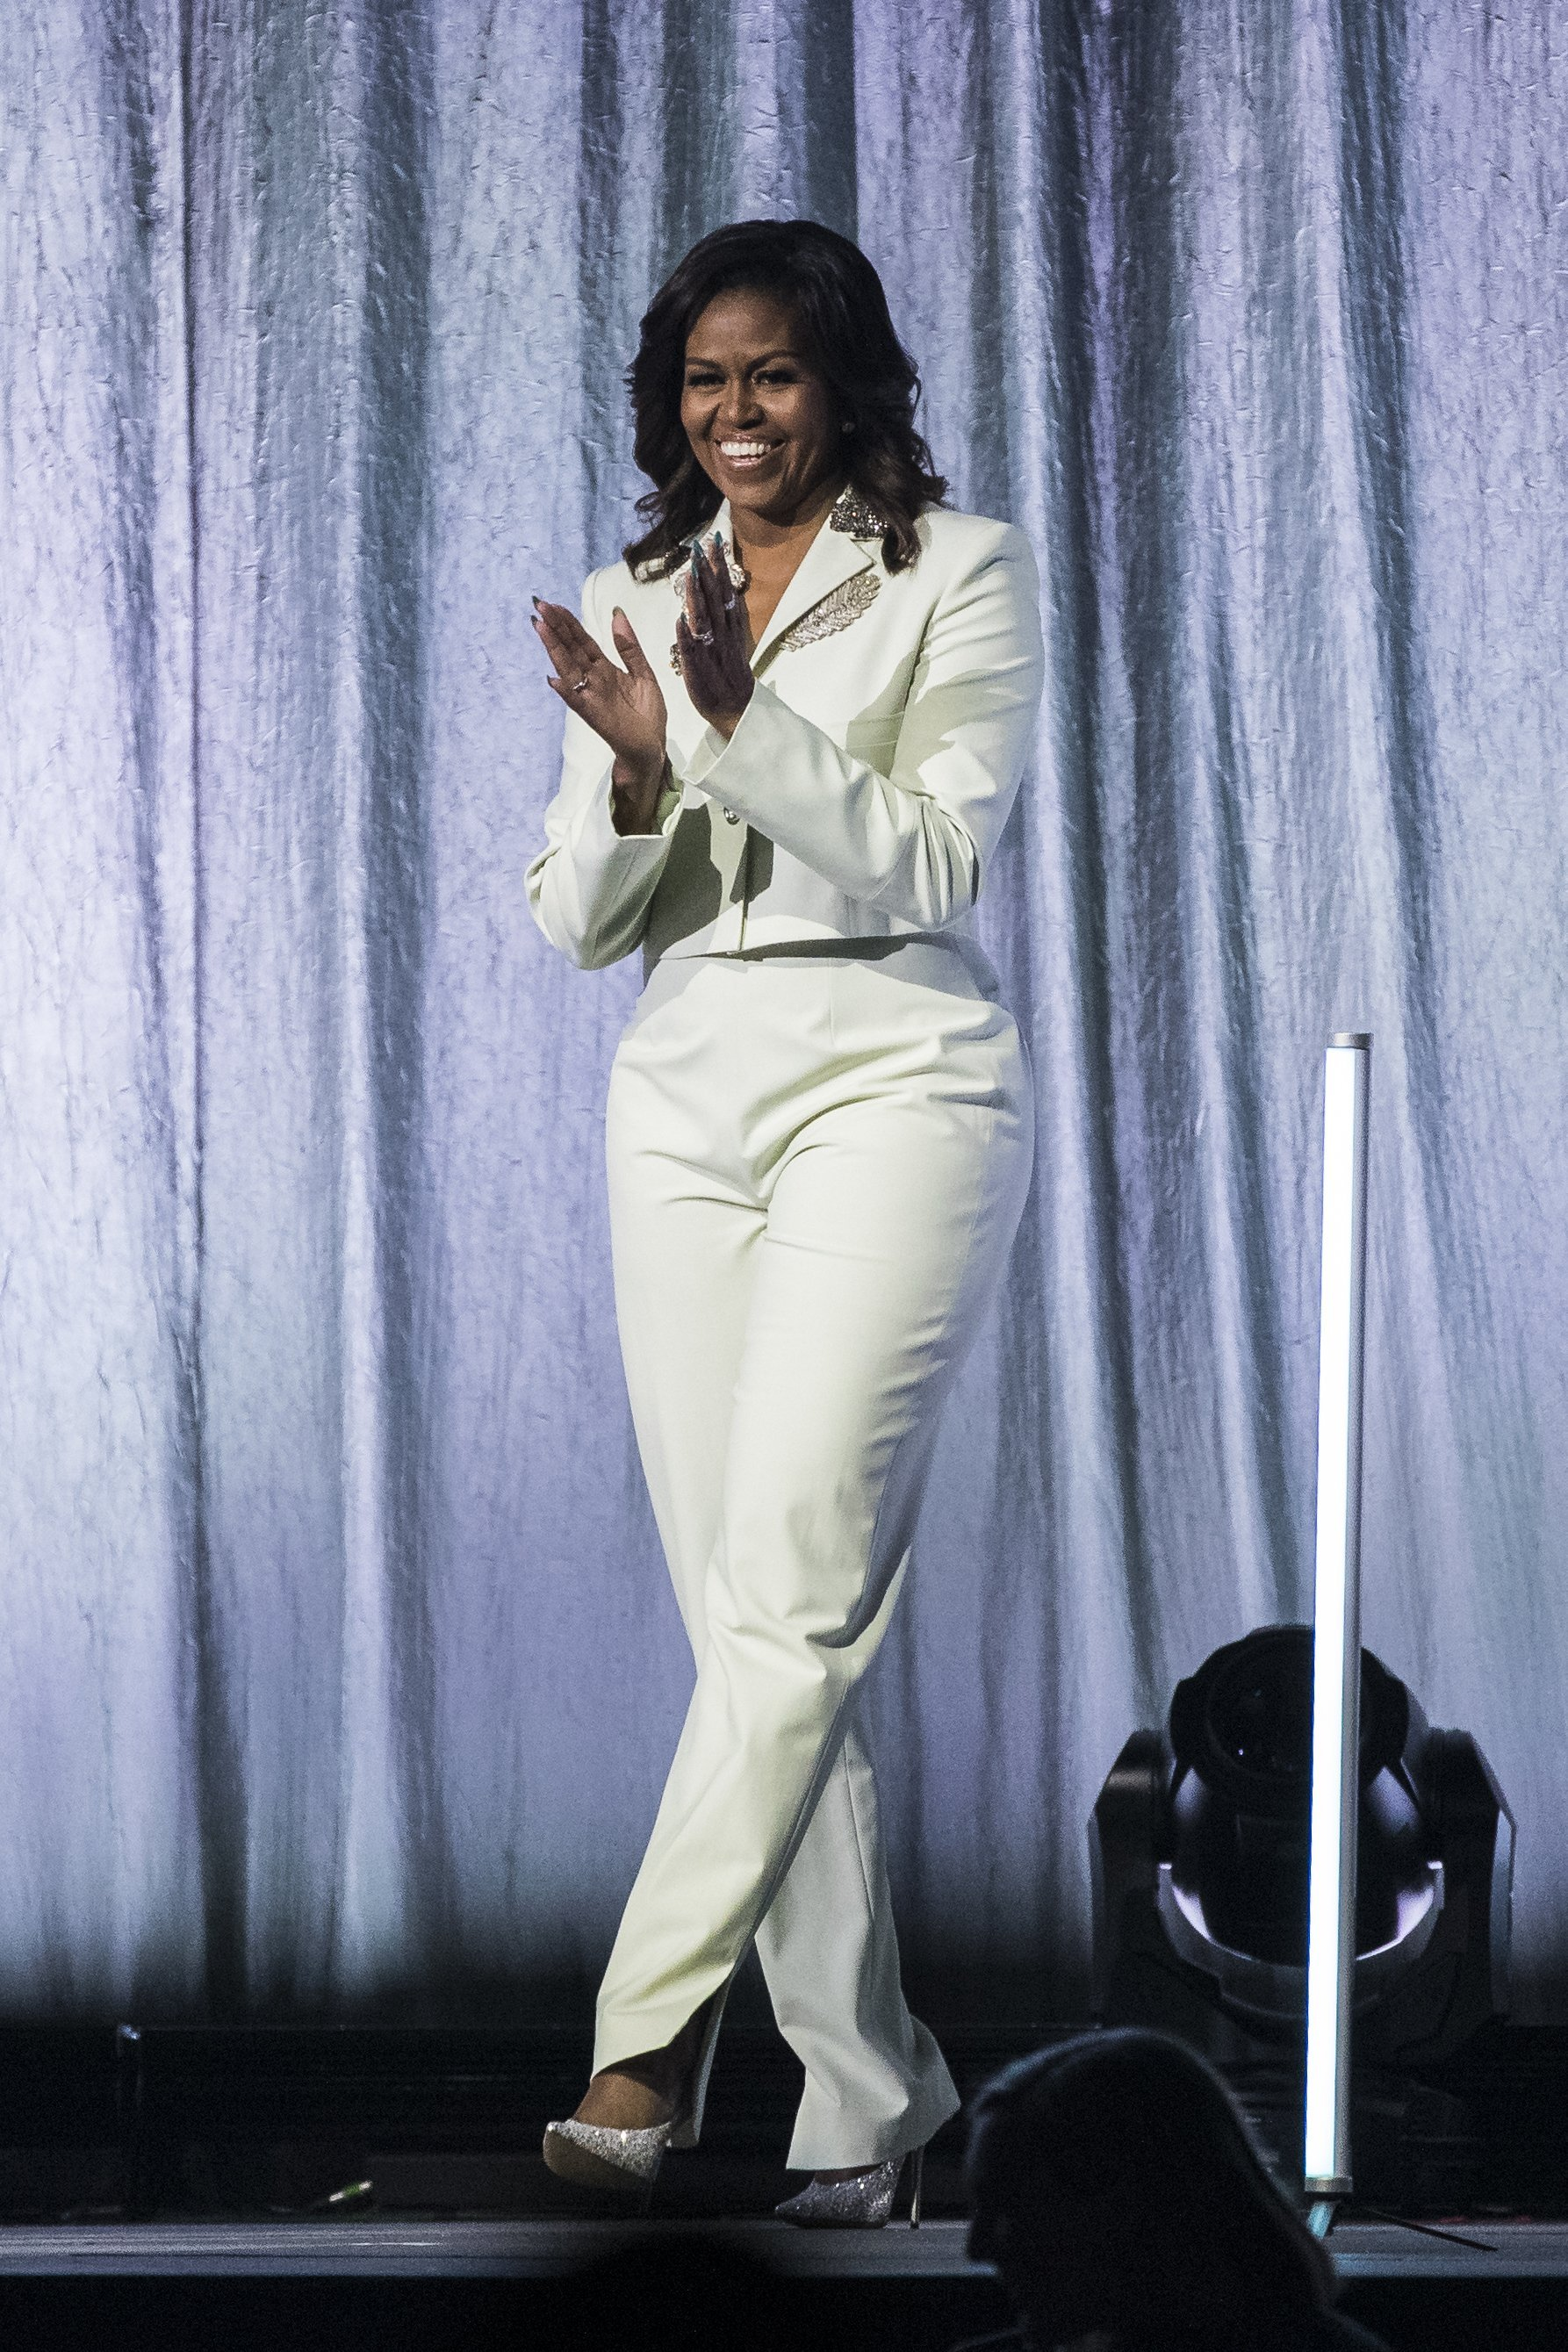 Michelle Obama during her 'Becoming: An Intimate Conversation with Michelle Obama' Tour in Stockholm, Sweden. April 10, 2019. | Photo: GettyImages